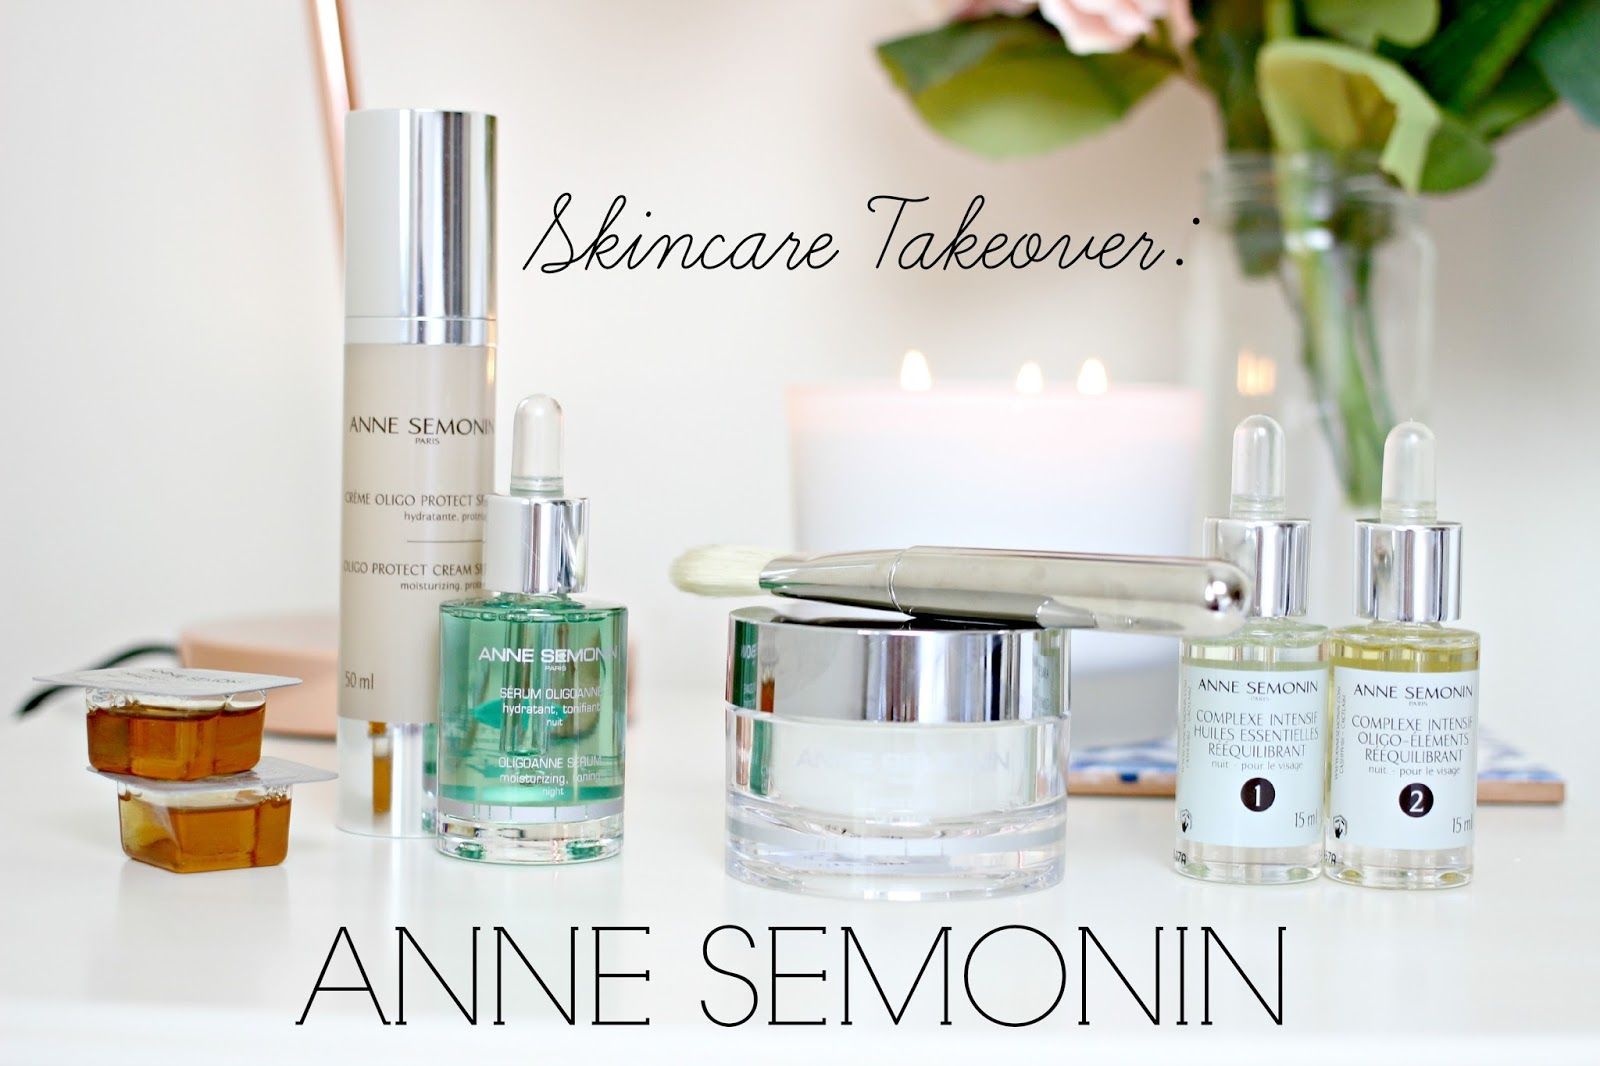 Fashion Mumblr: Skincare Takeover : Anne Semonin